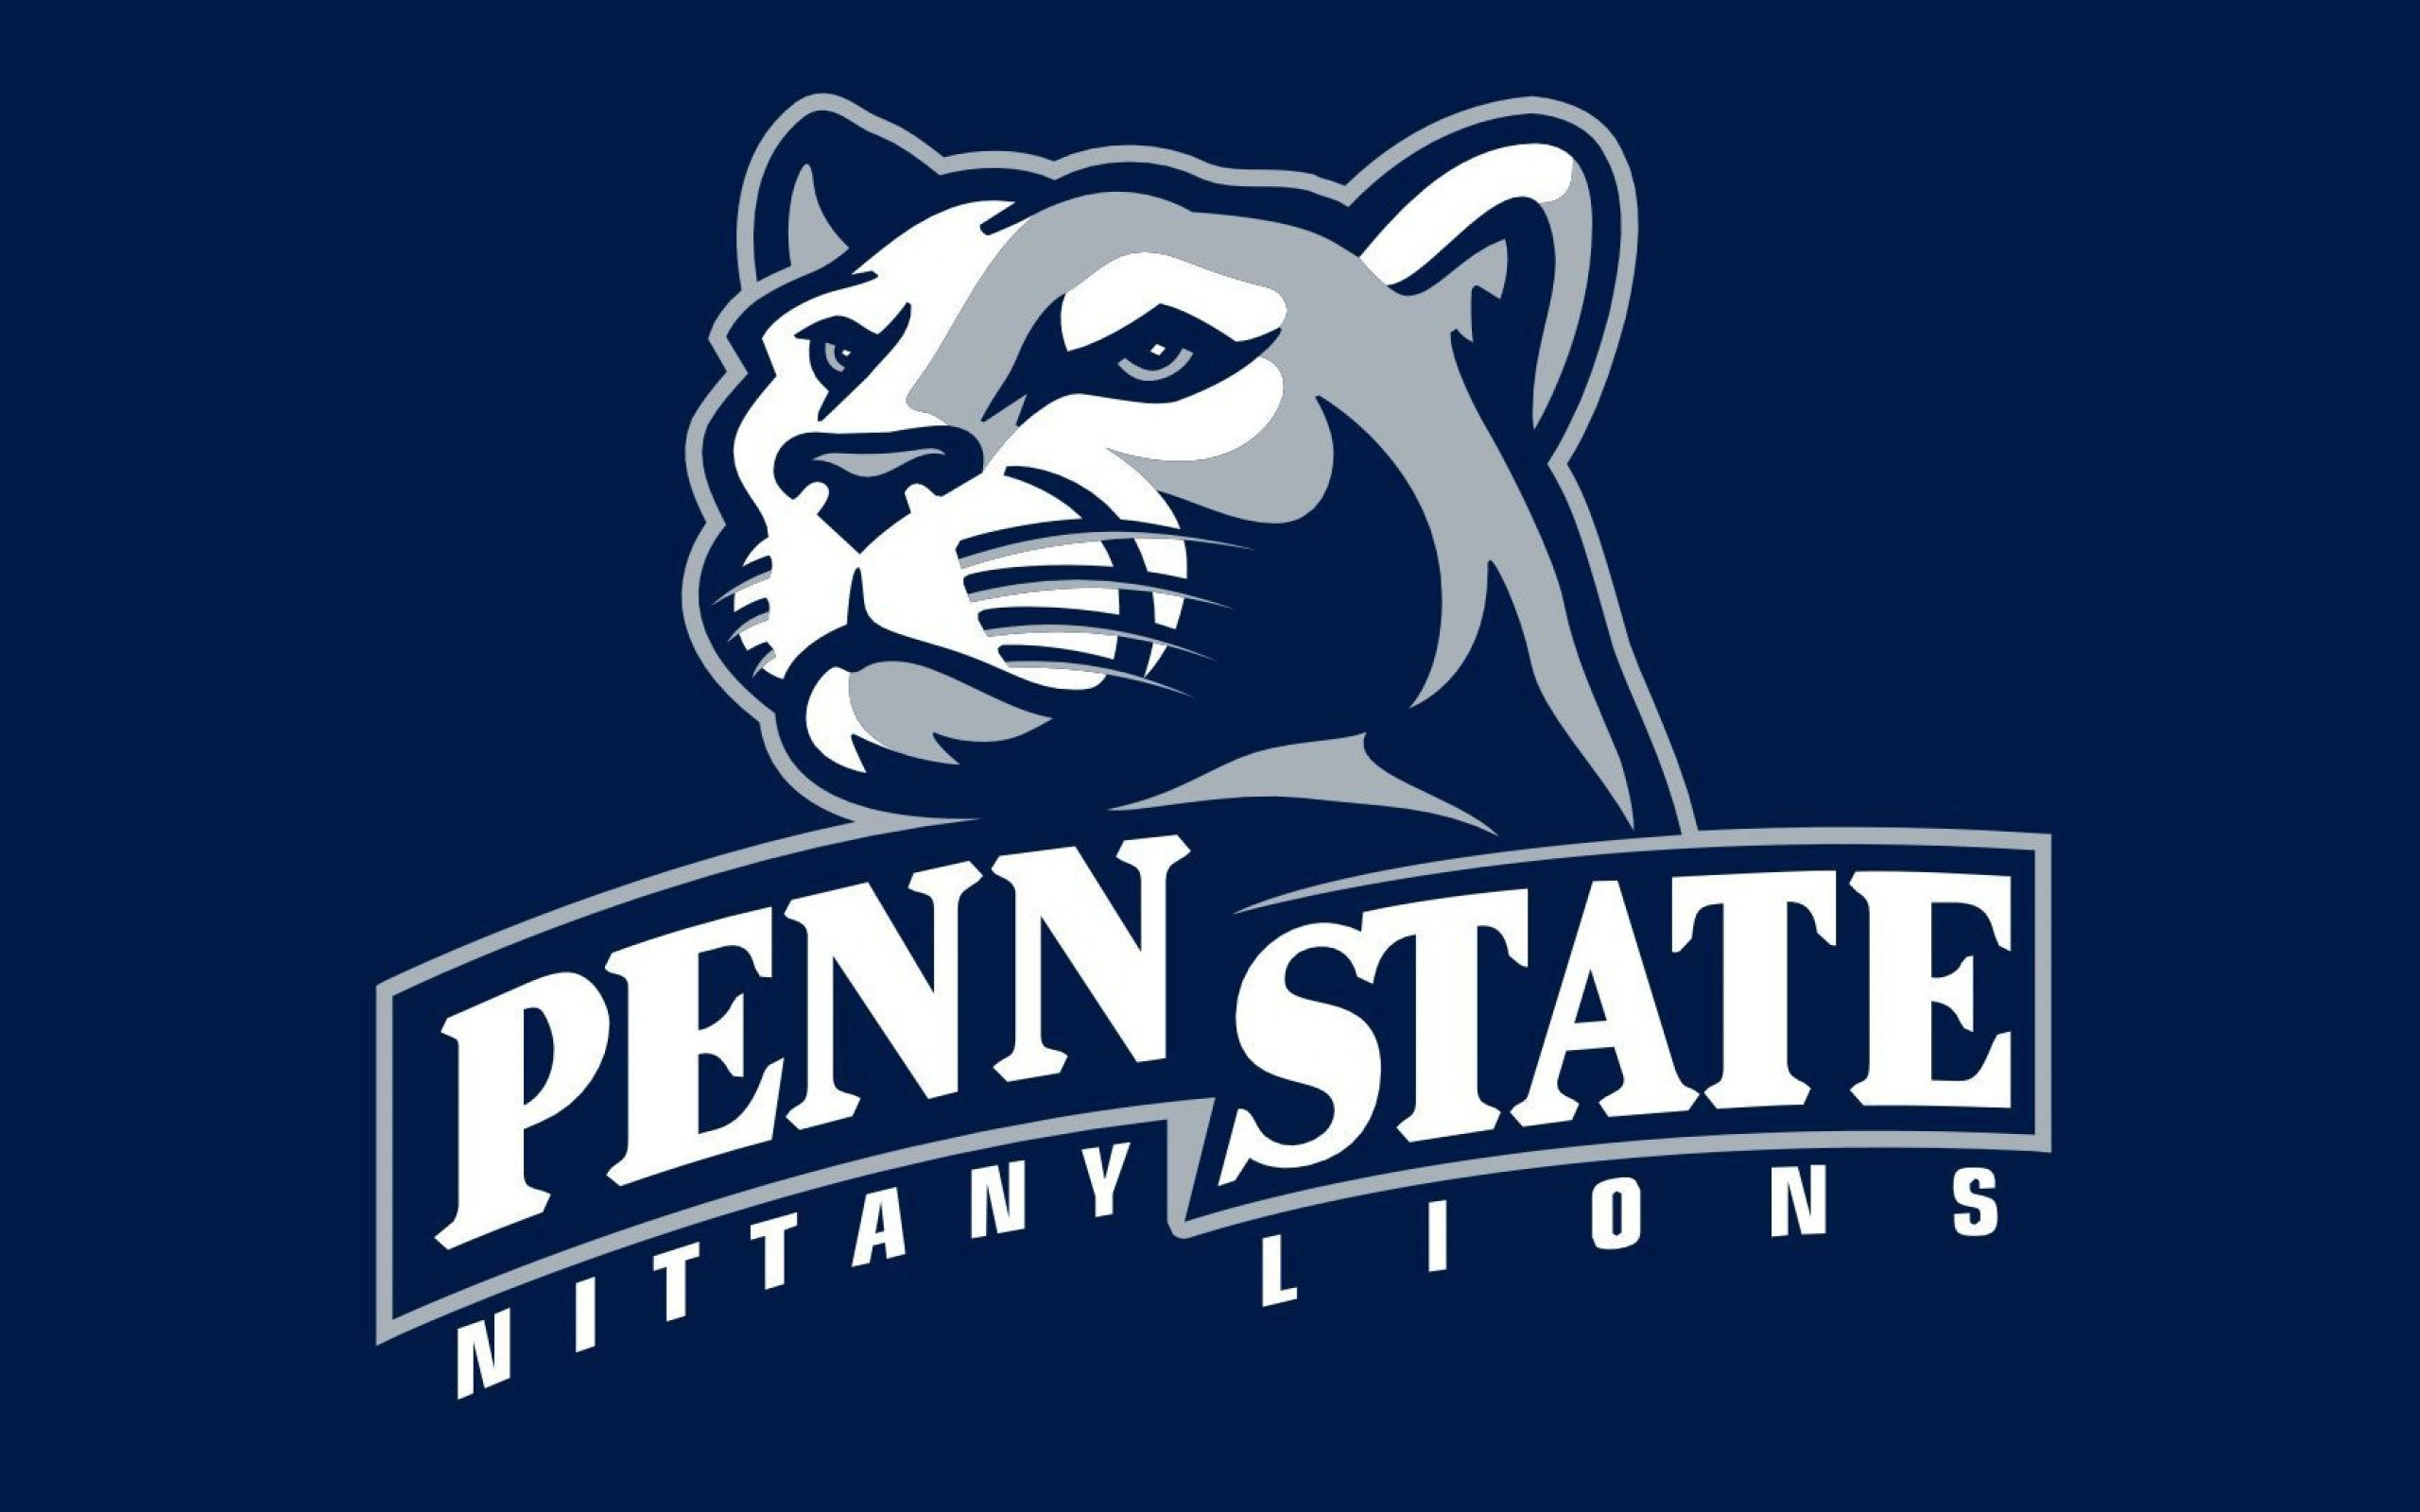 2560x1600 Penn State Wrestling Wallpaper